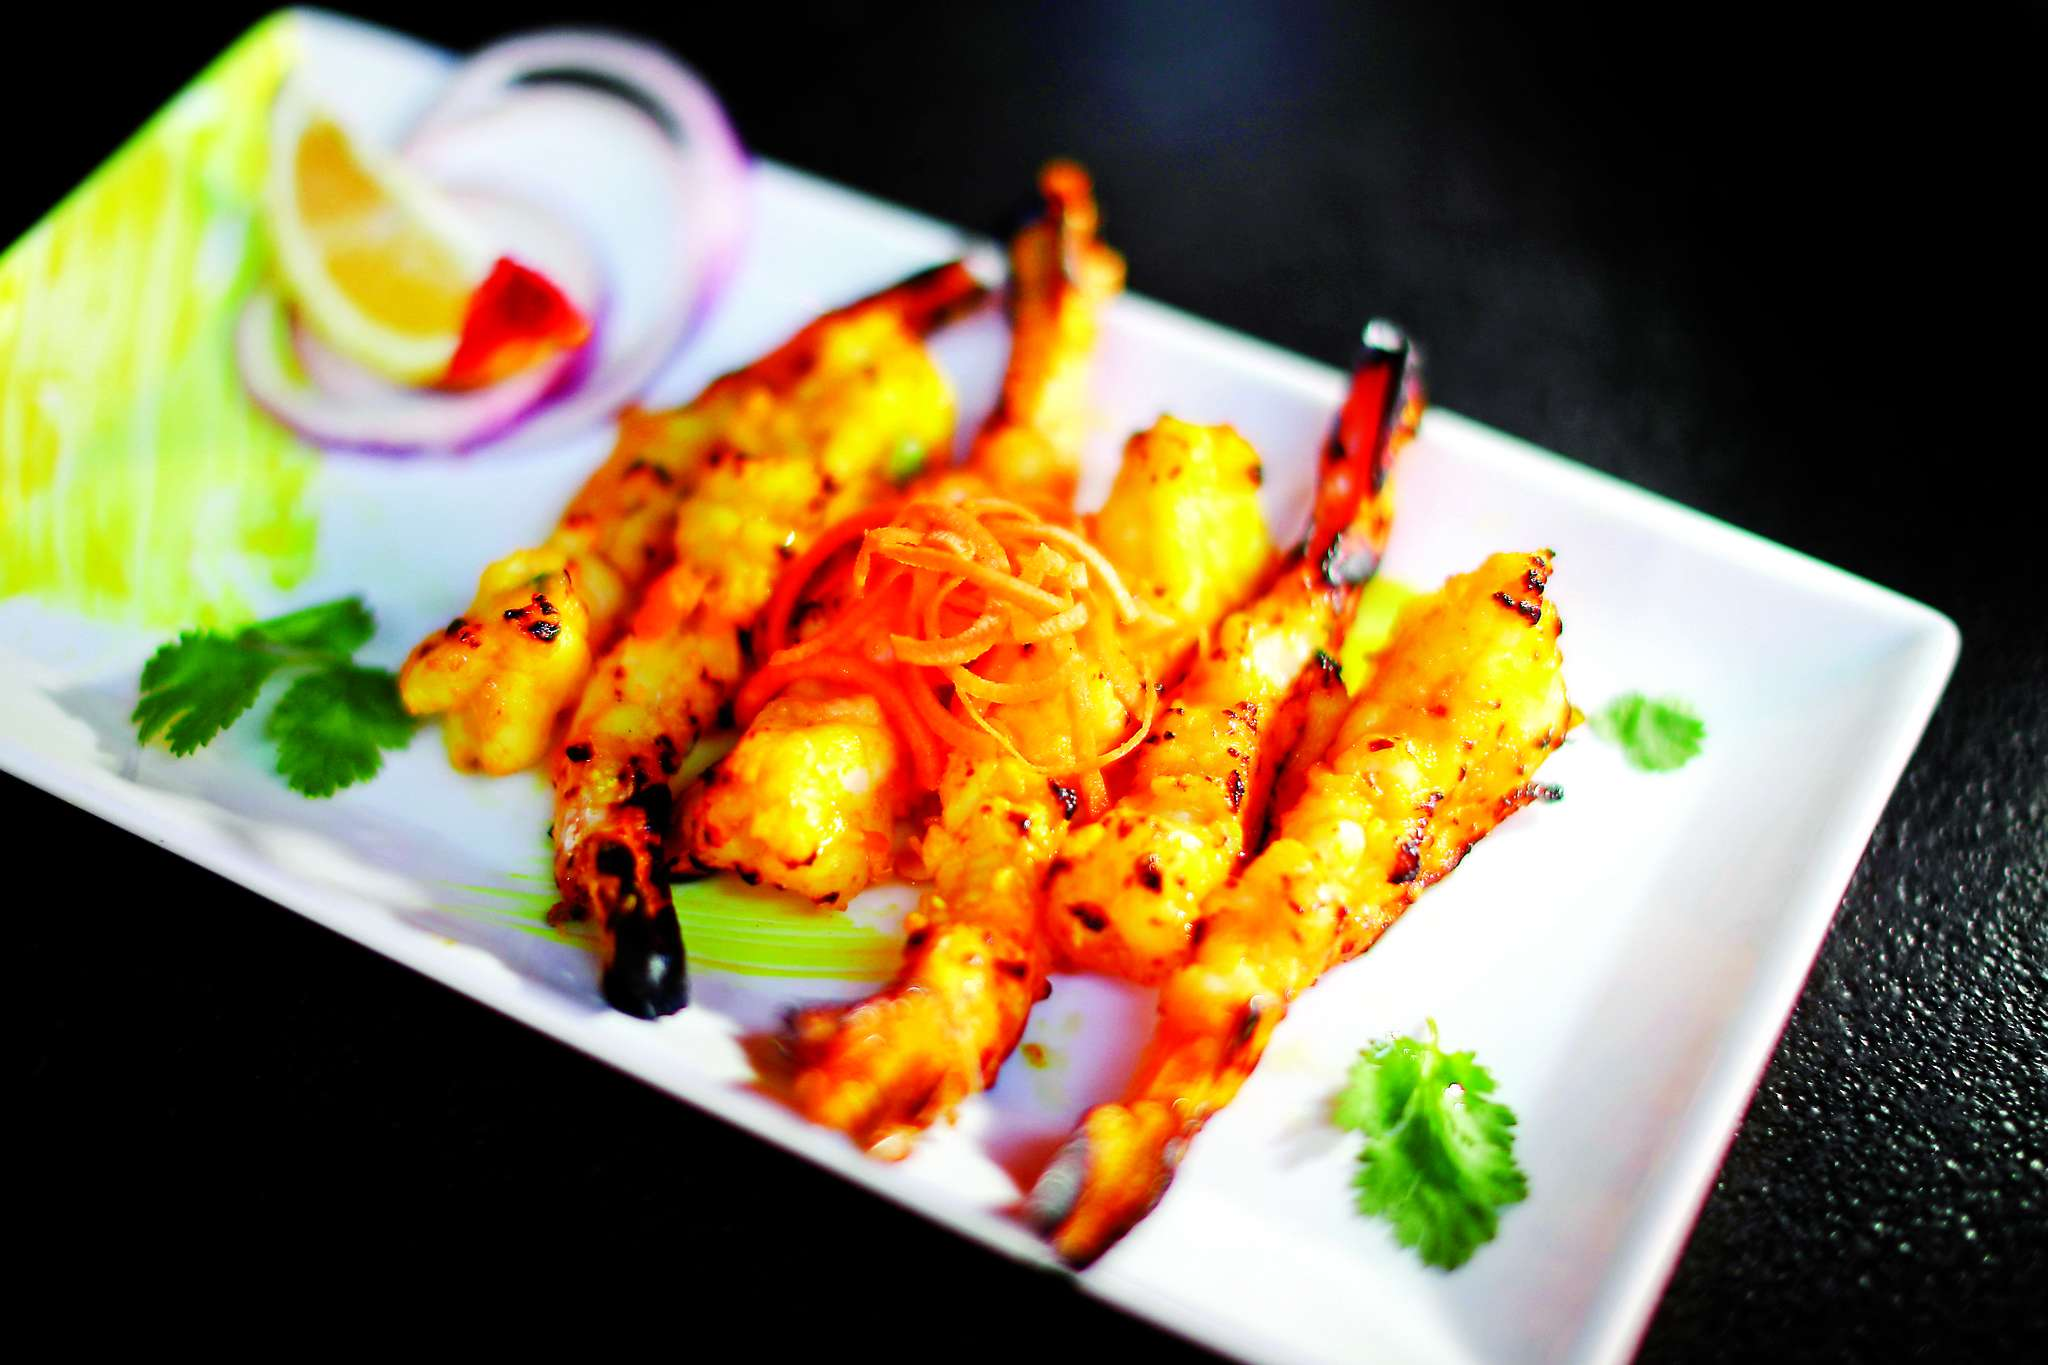 Grilled tandoori shrimp served with a yogurt marinade at Veda.